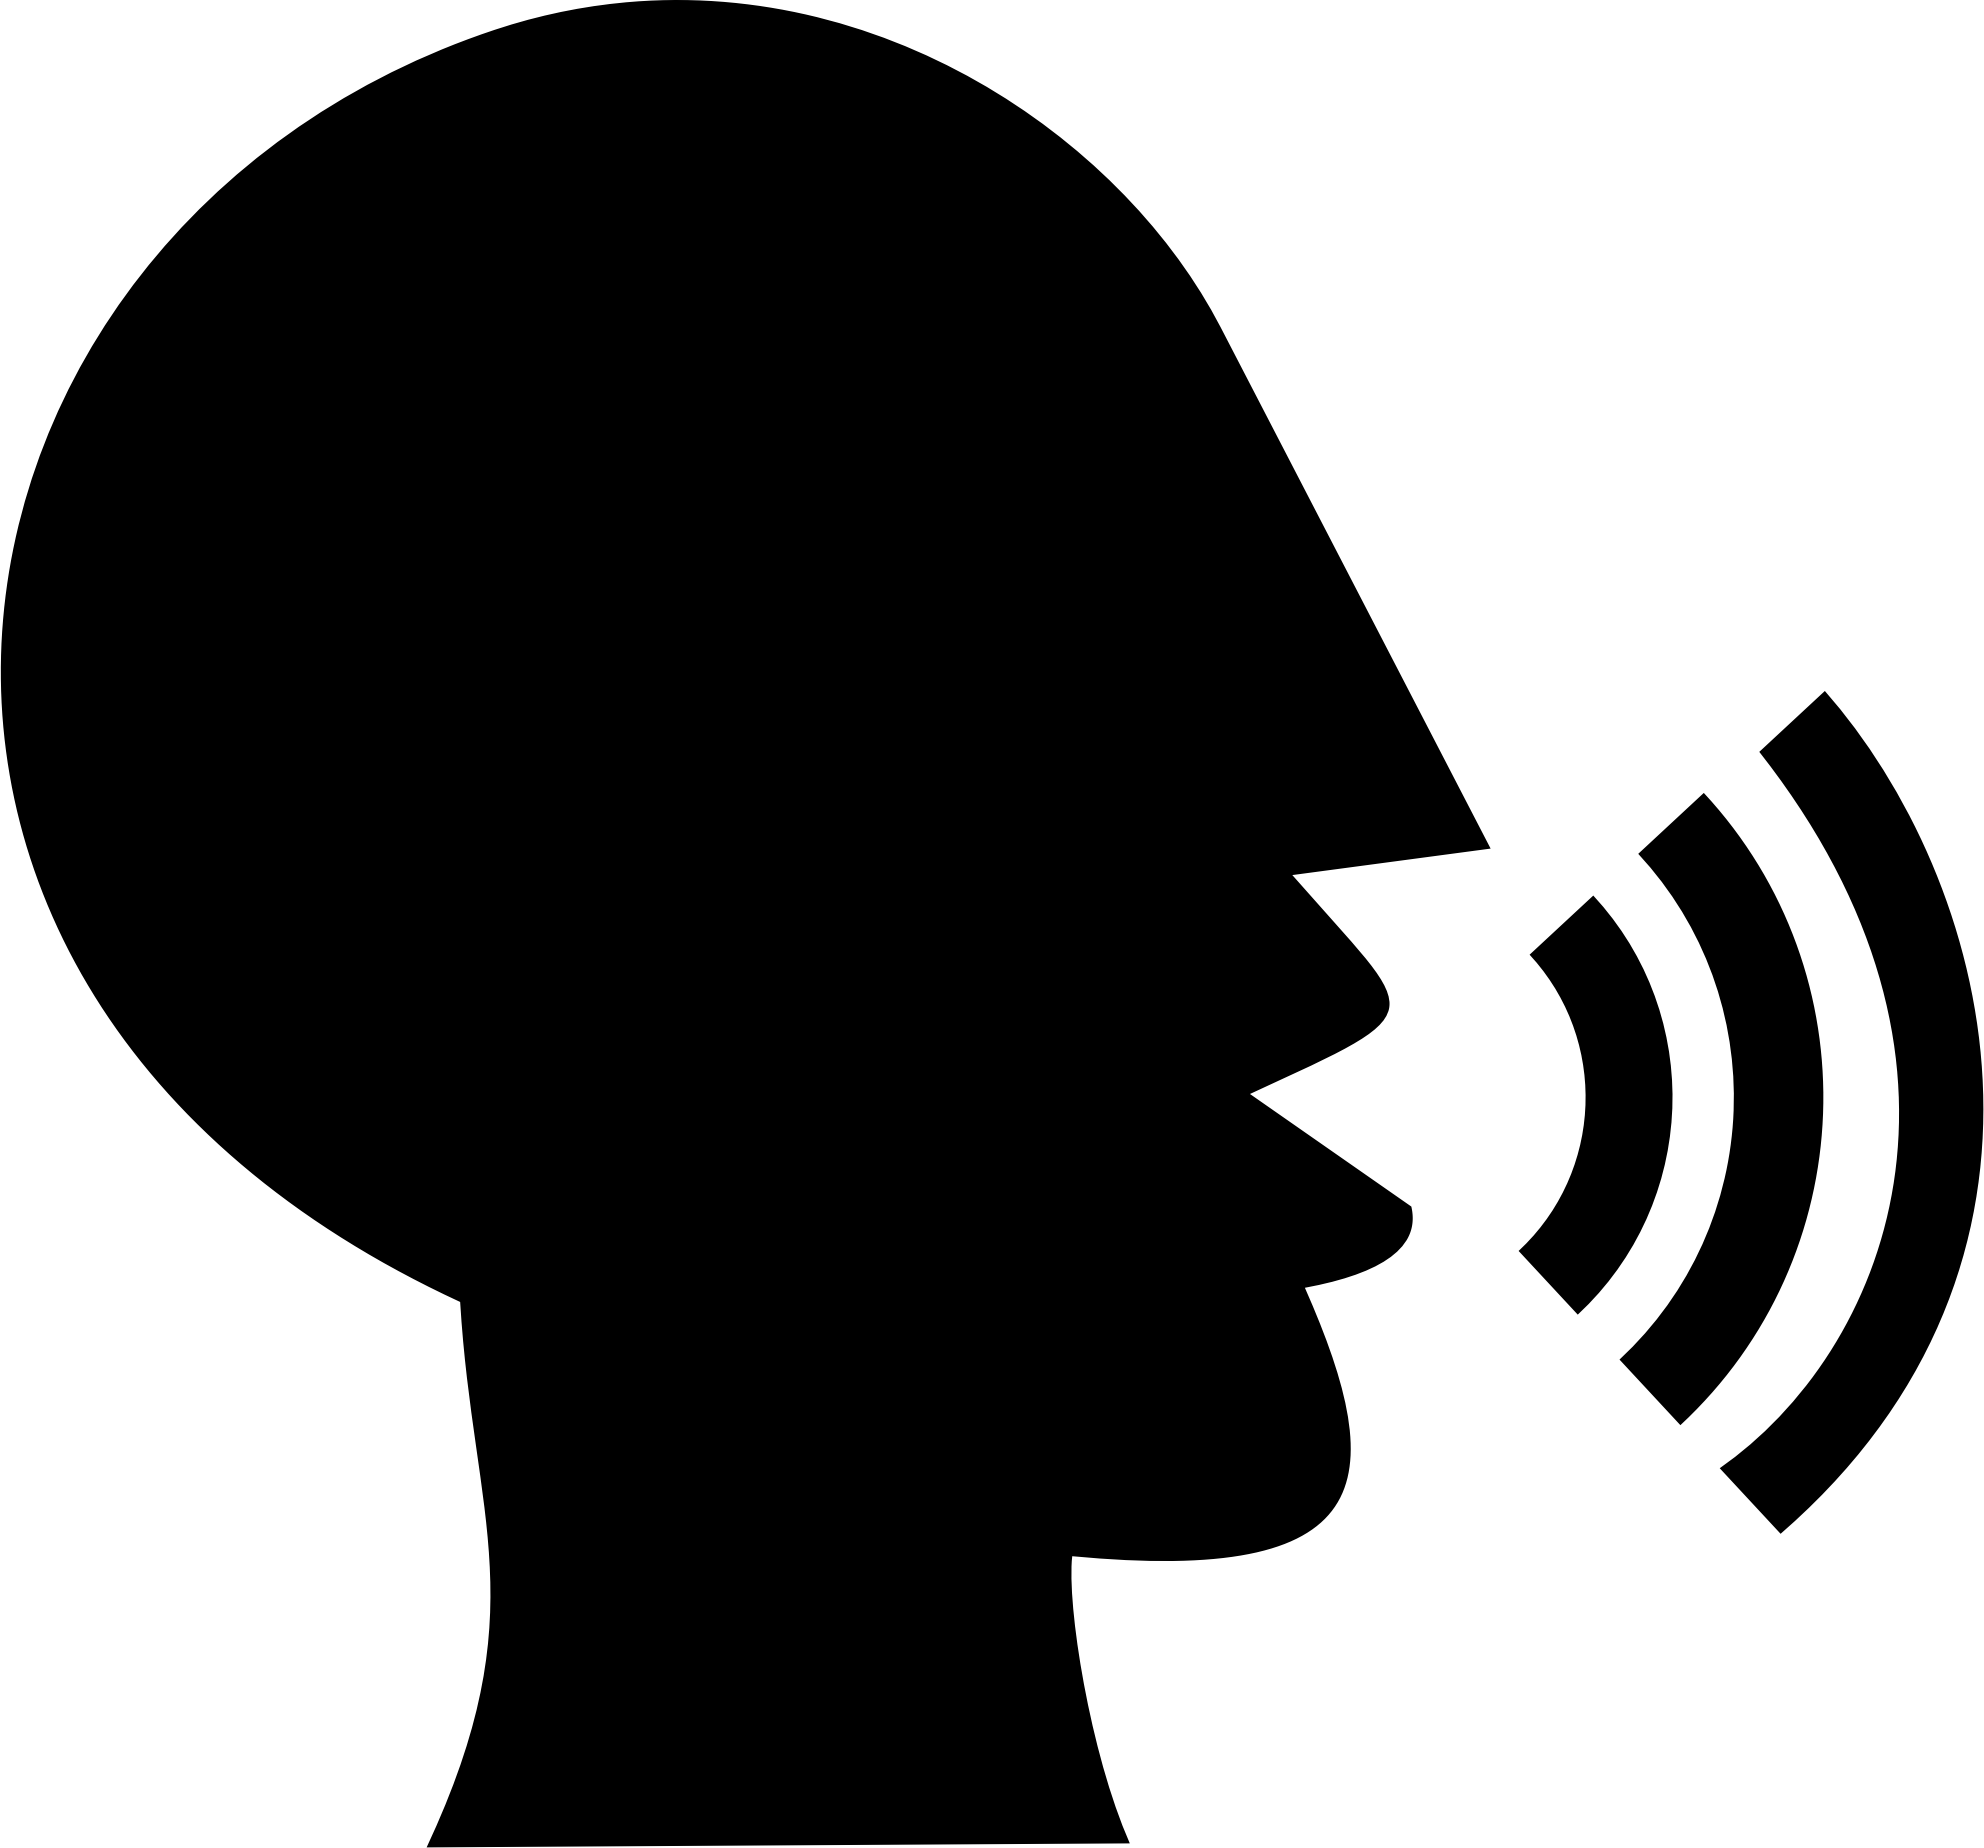 1984x1848 Talking Head Silhouette Vector Clipart Image